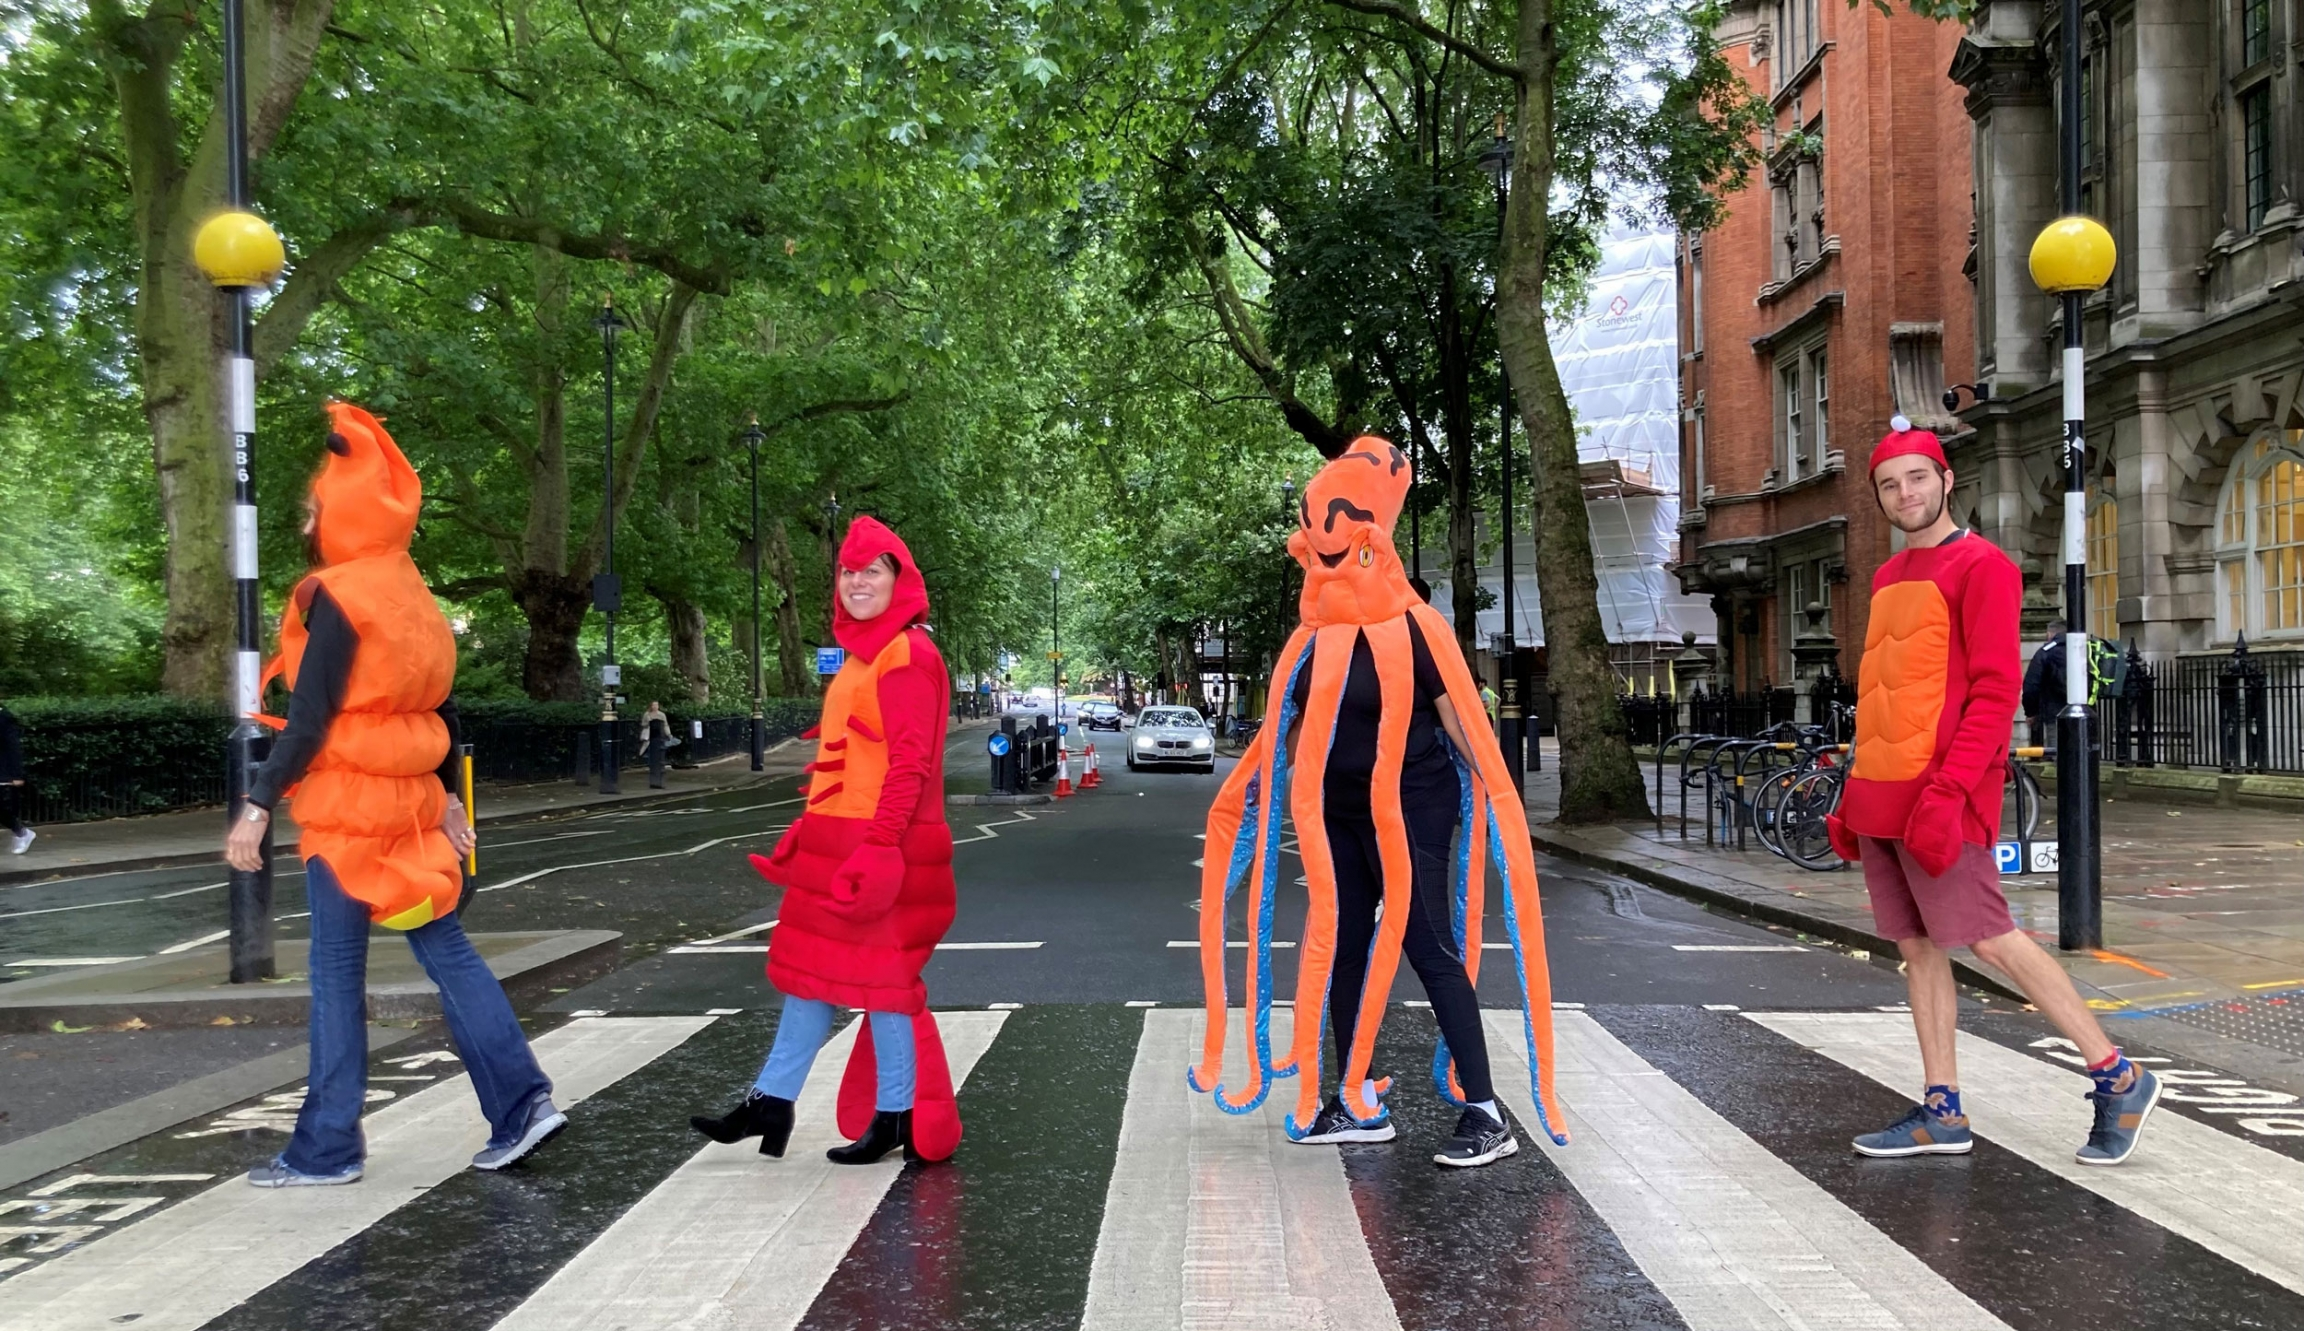 Activists with Crustacean Compassion wear shellfish costumes as they cross the street.